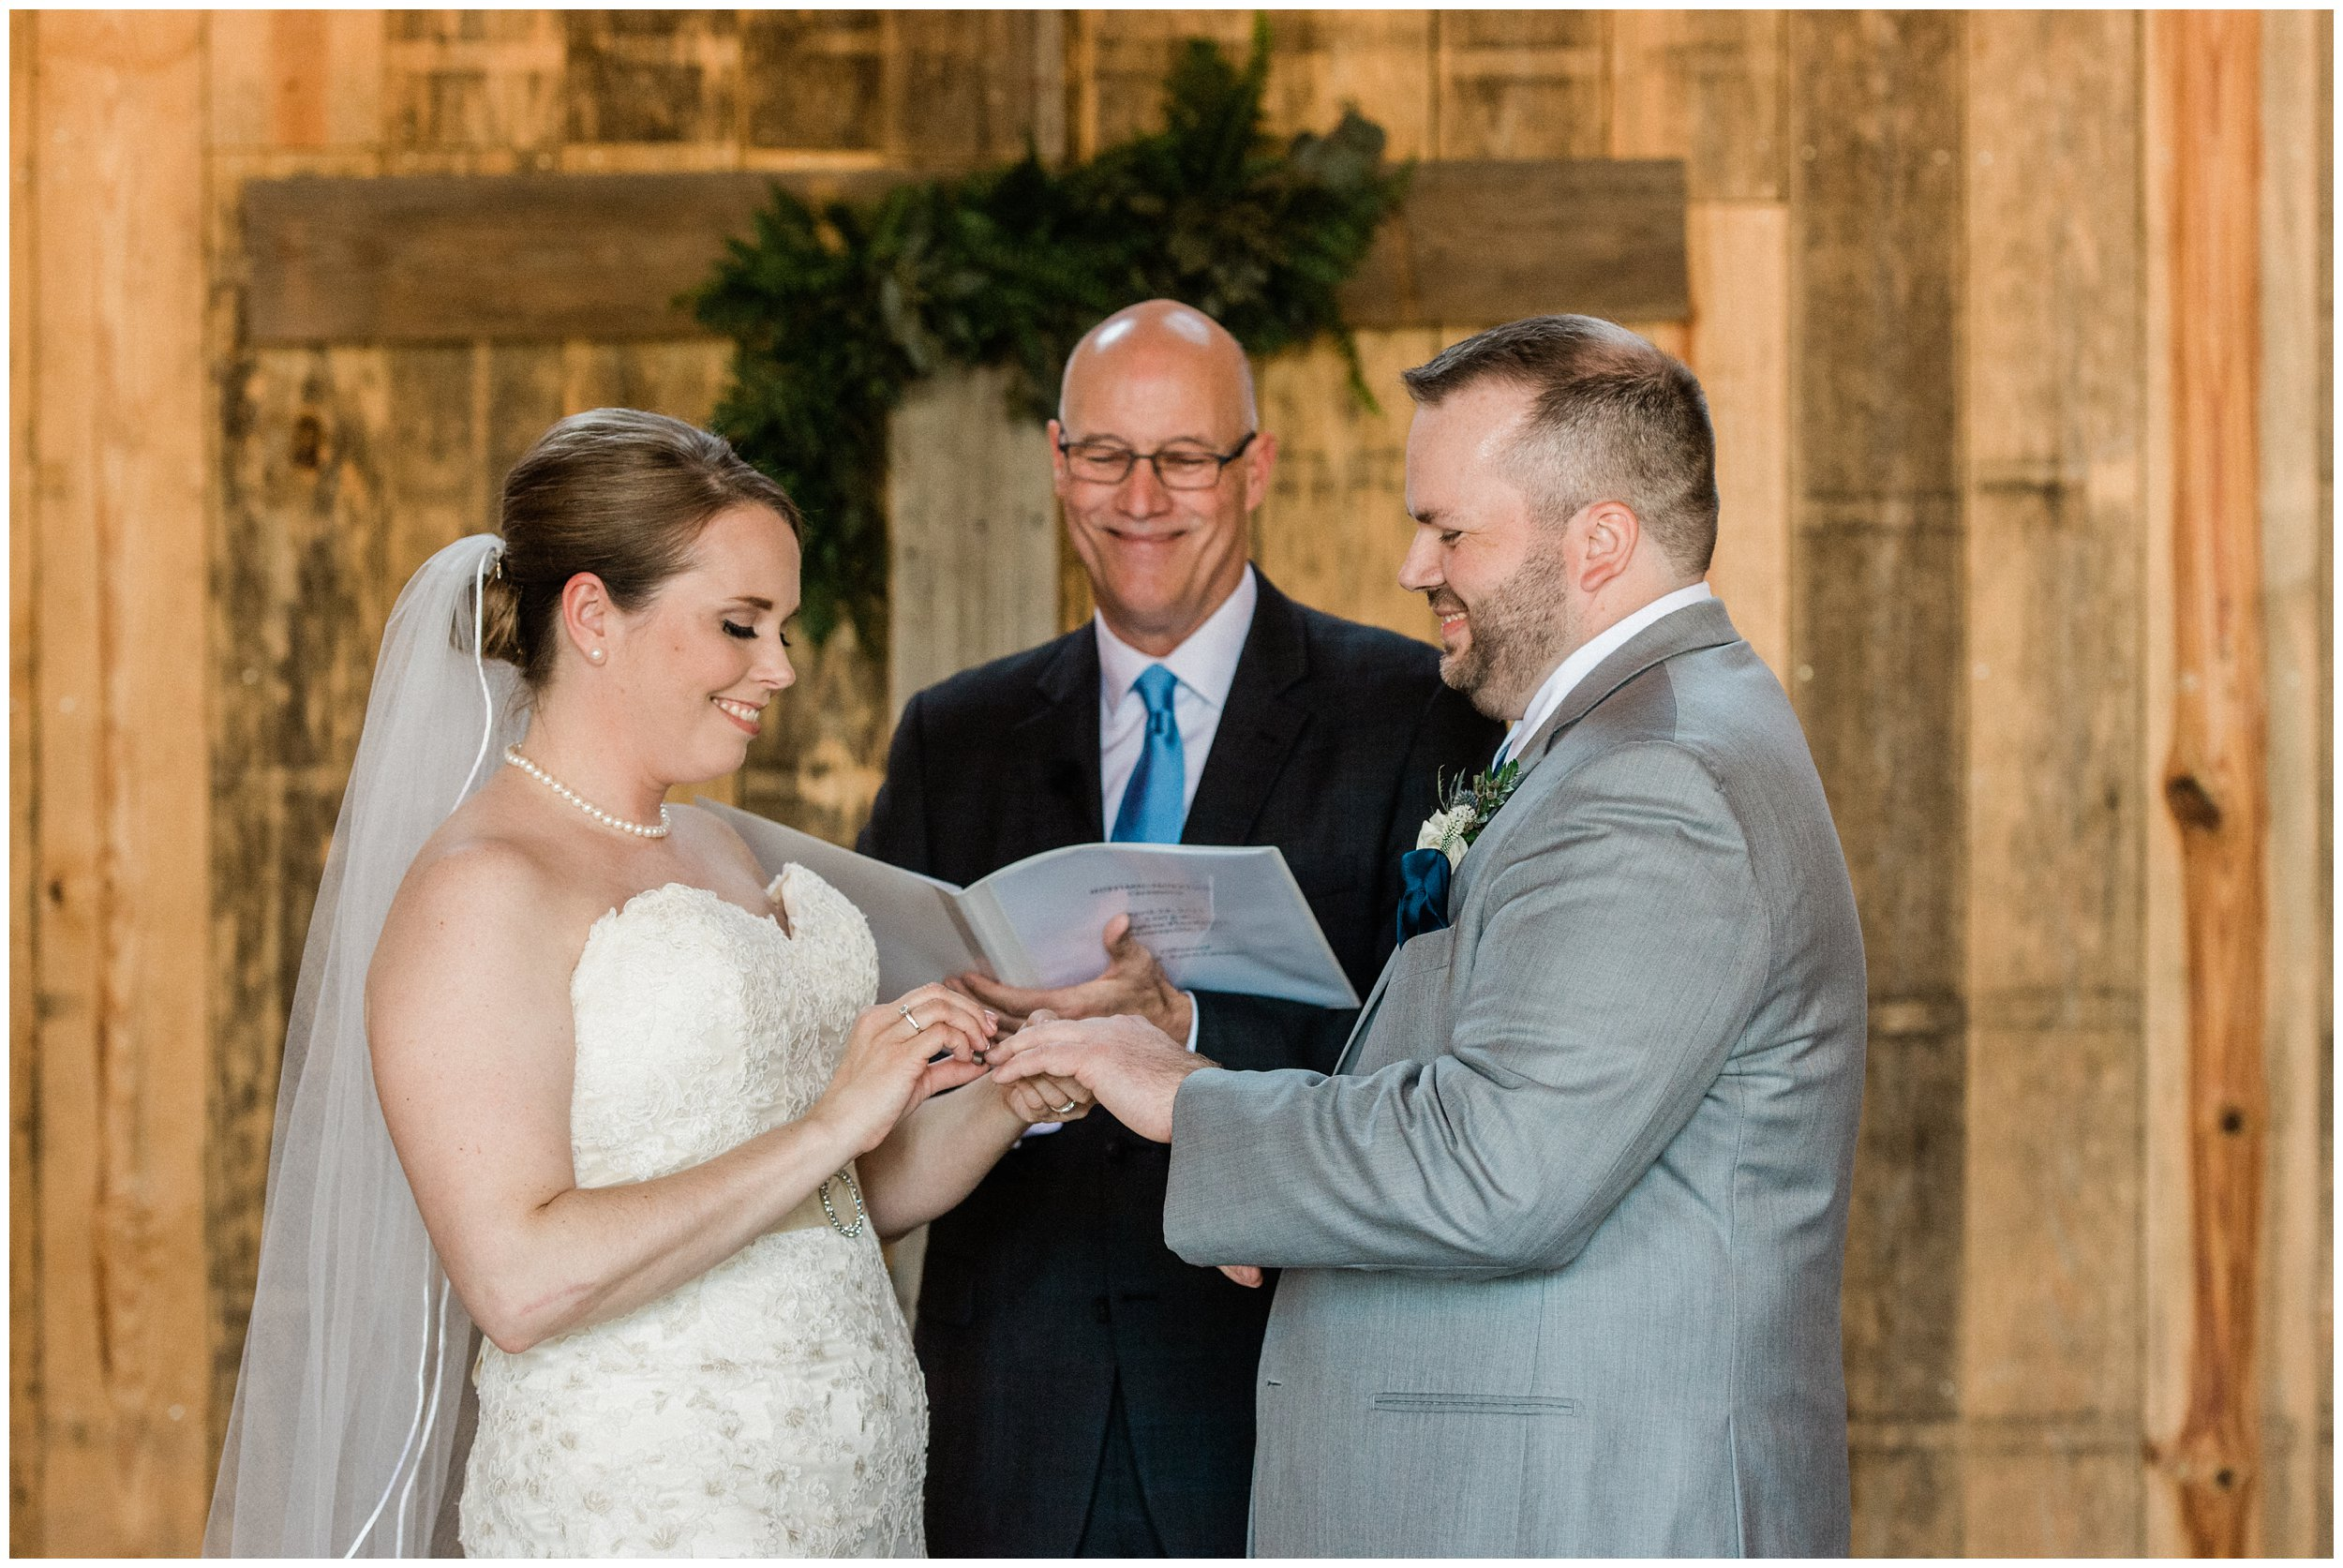 charlotte wedding ceremony details